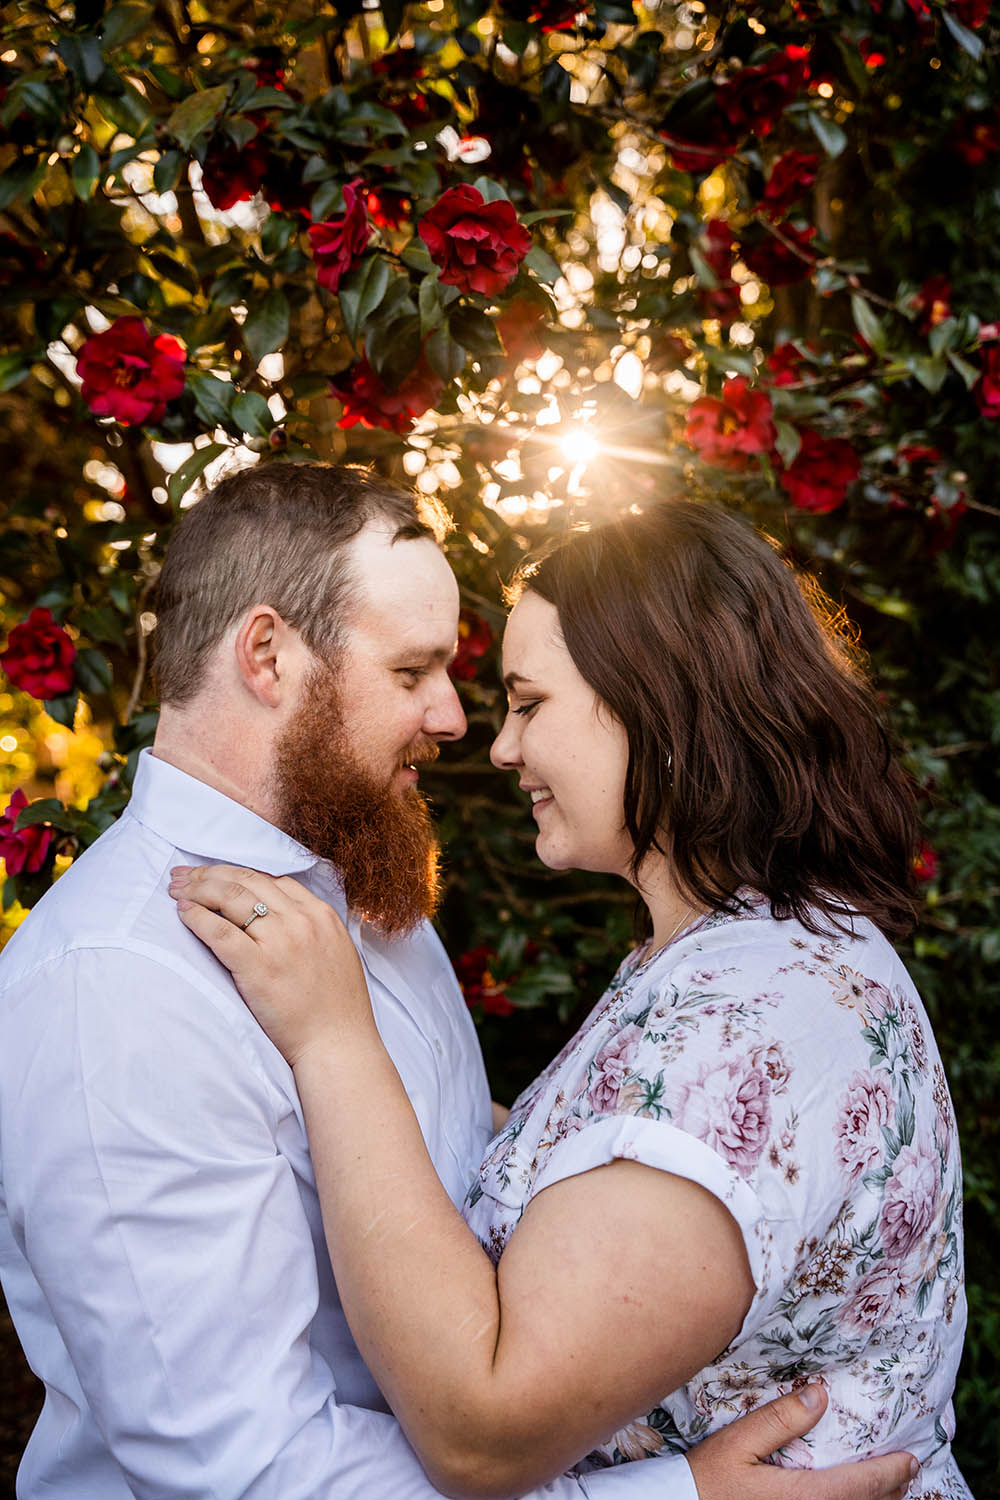 Family Photography - Couple embracing